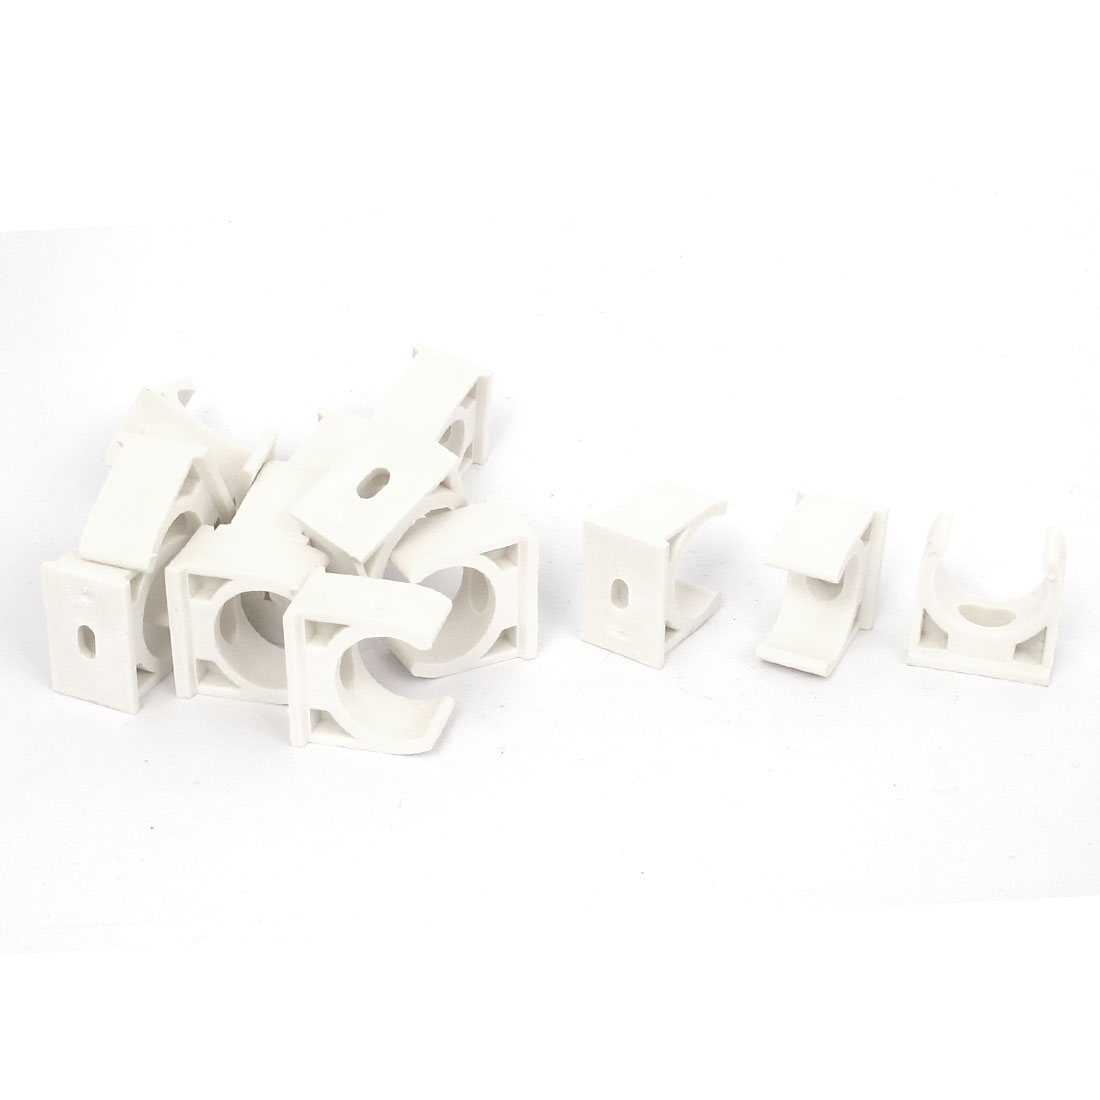 15pcs 20mm Diameter White PVC Water Supply Tube Pipe Hose Clamps Clips Fittings